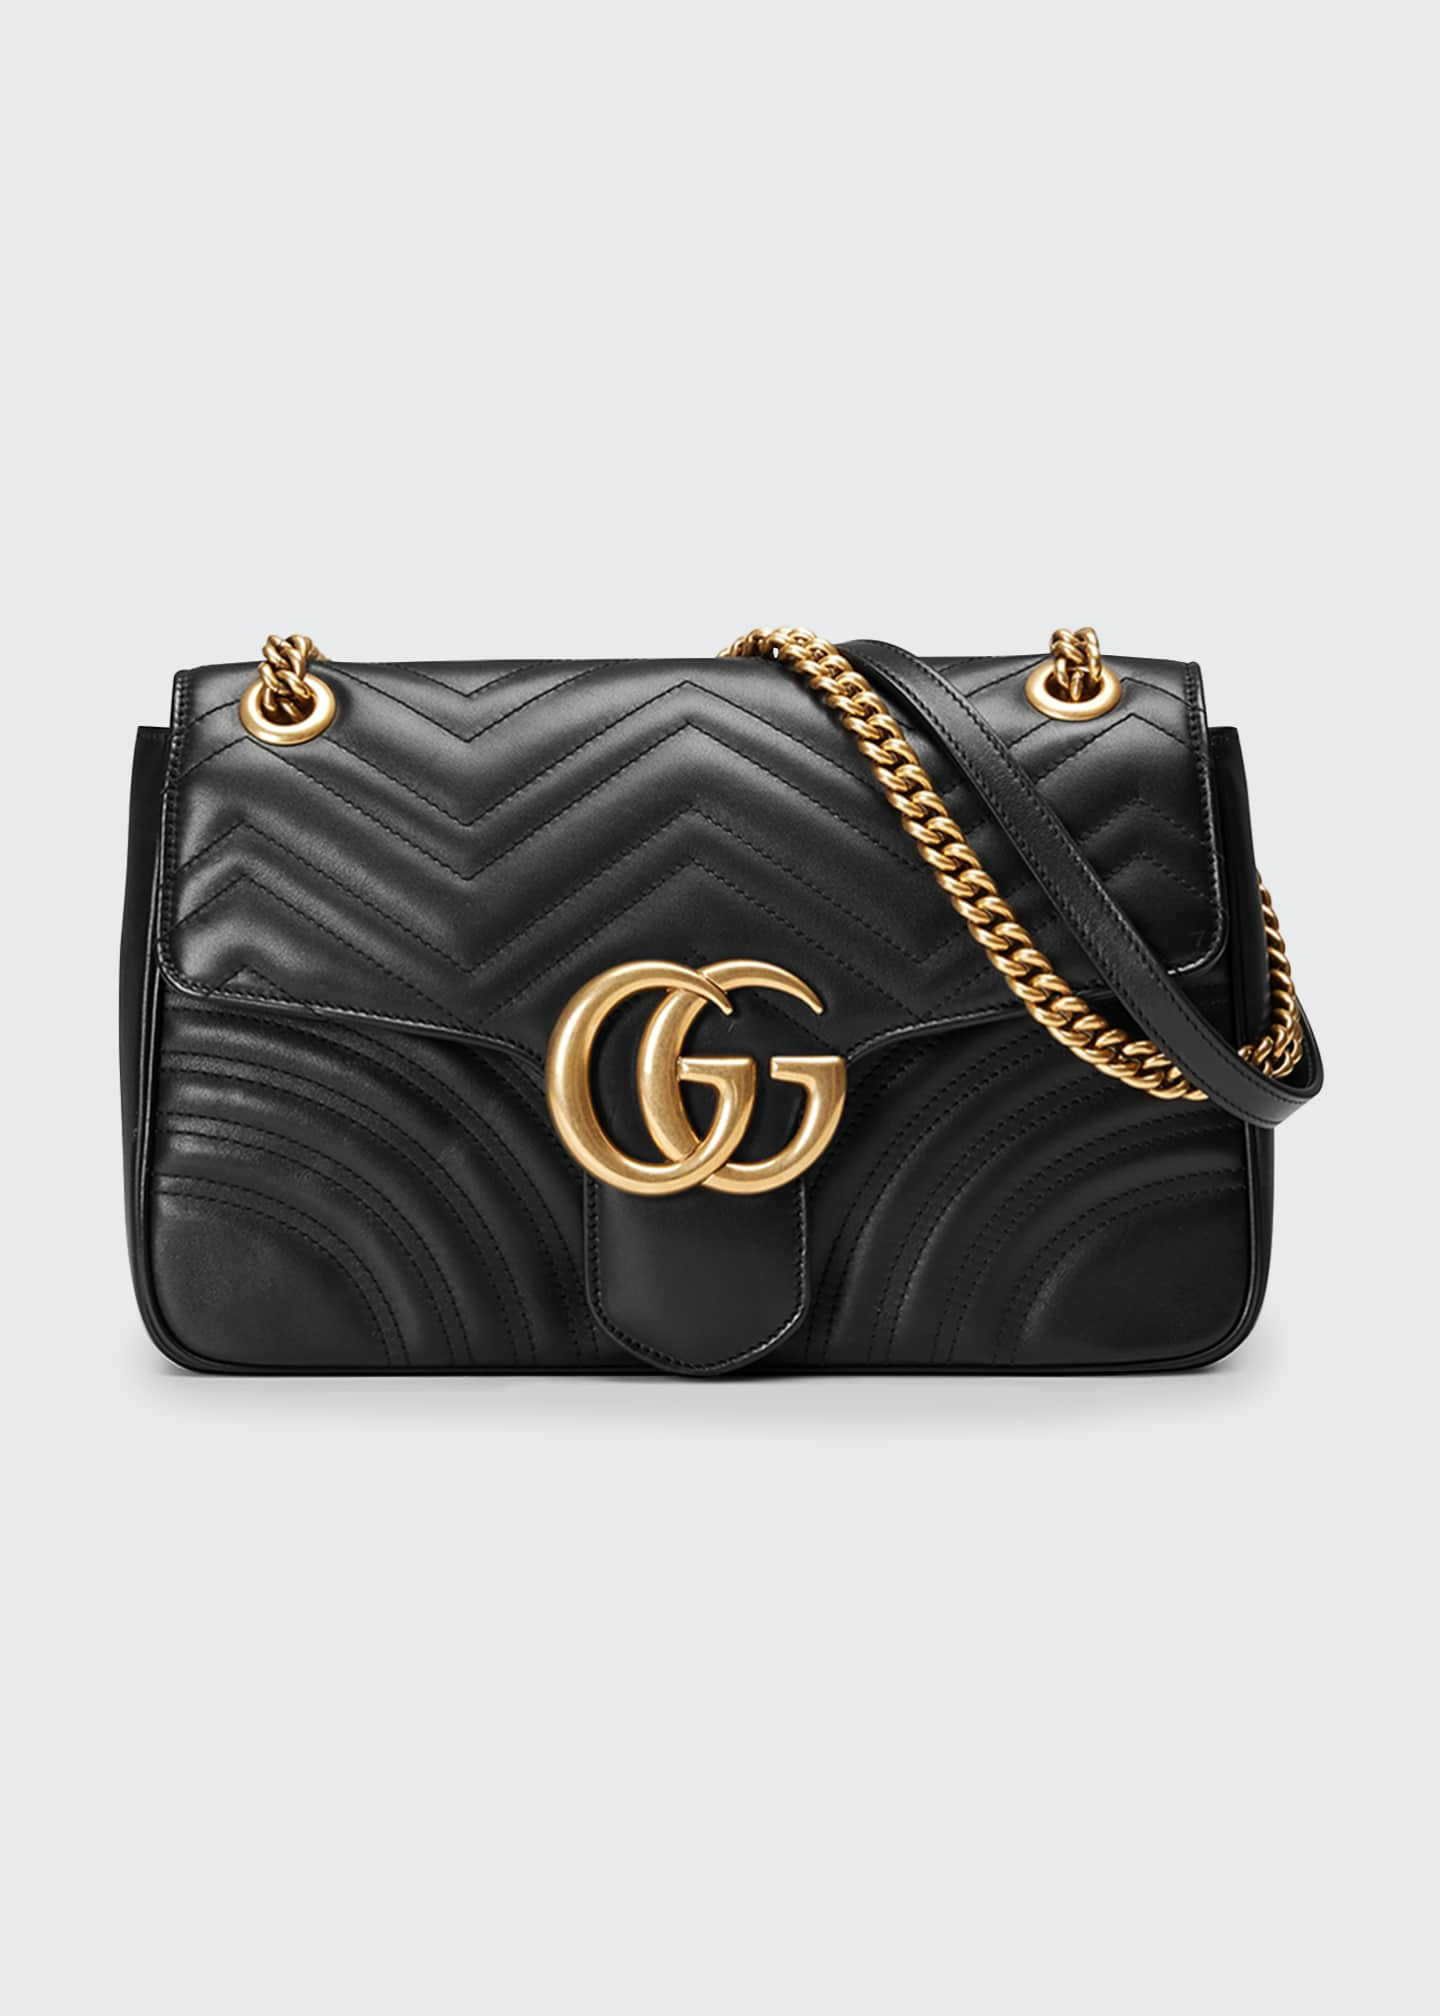 Gucci GG Marmont 2.0 Medium Quilted Shoulder Bag,